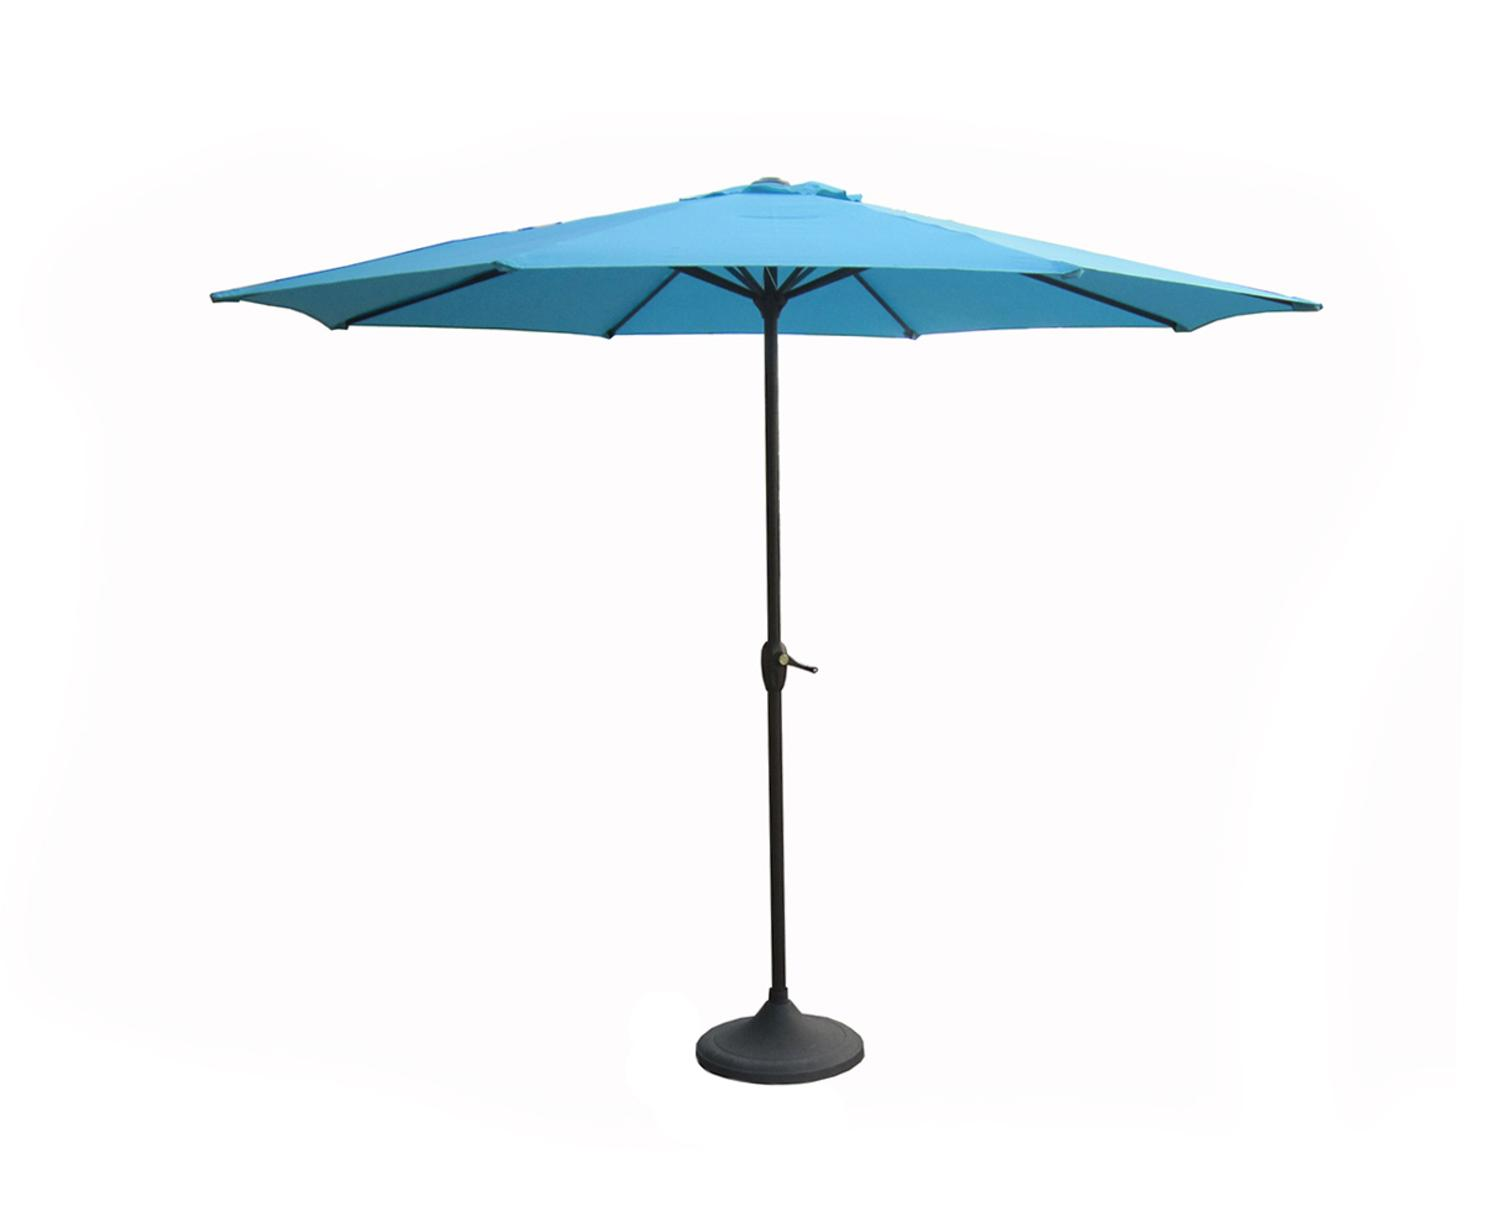 9u0027 Outdoor Patio Market Umbrella With Hand Crank And Tilt   Turquoise Teal